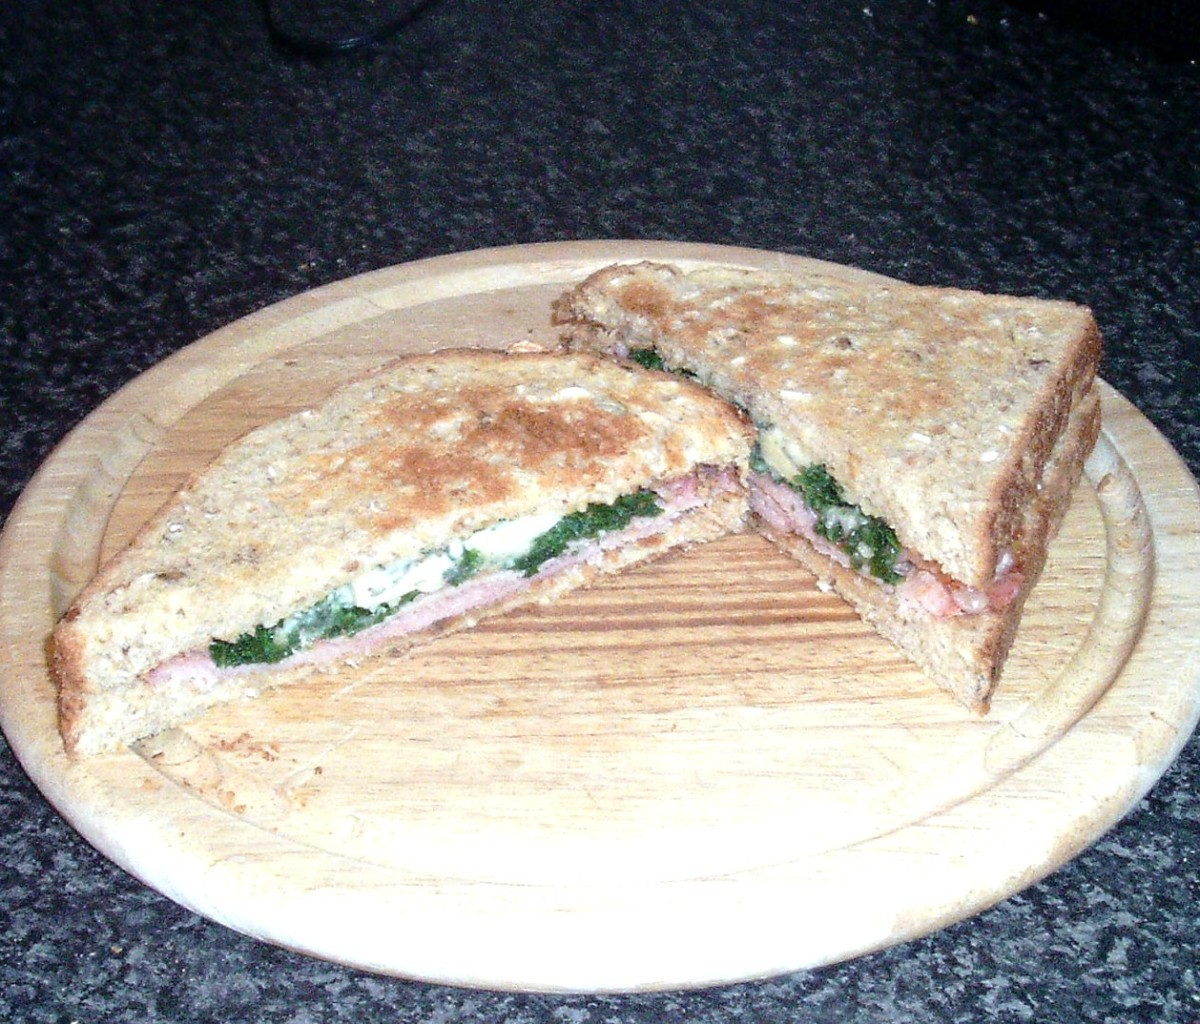 Kale, Stilton and bacon sandwich is sliced for service